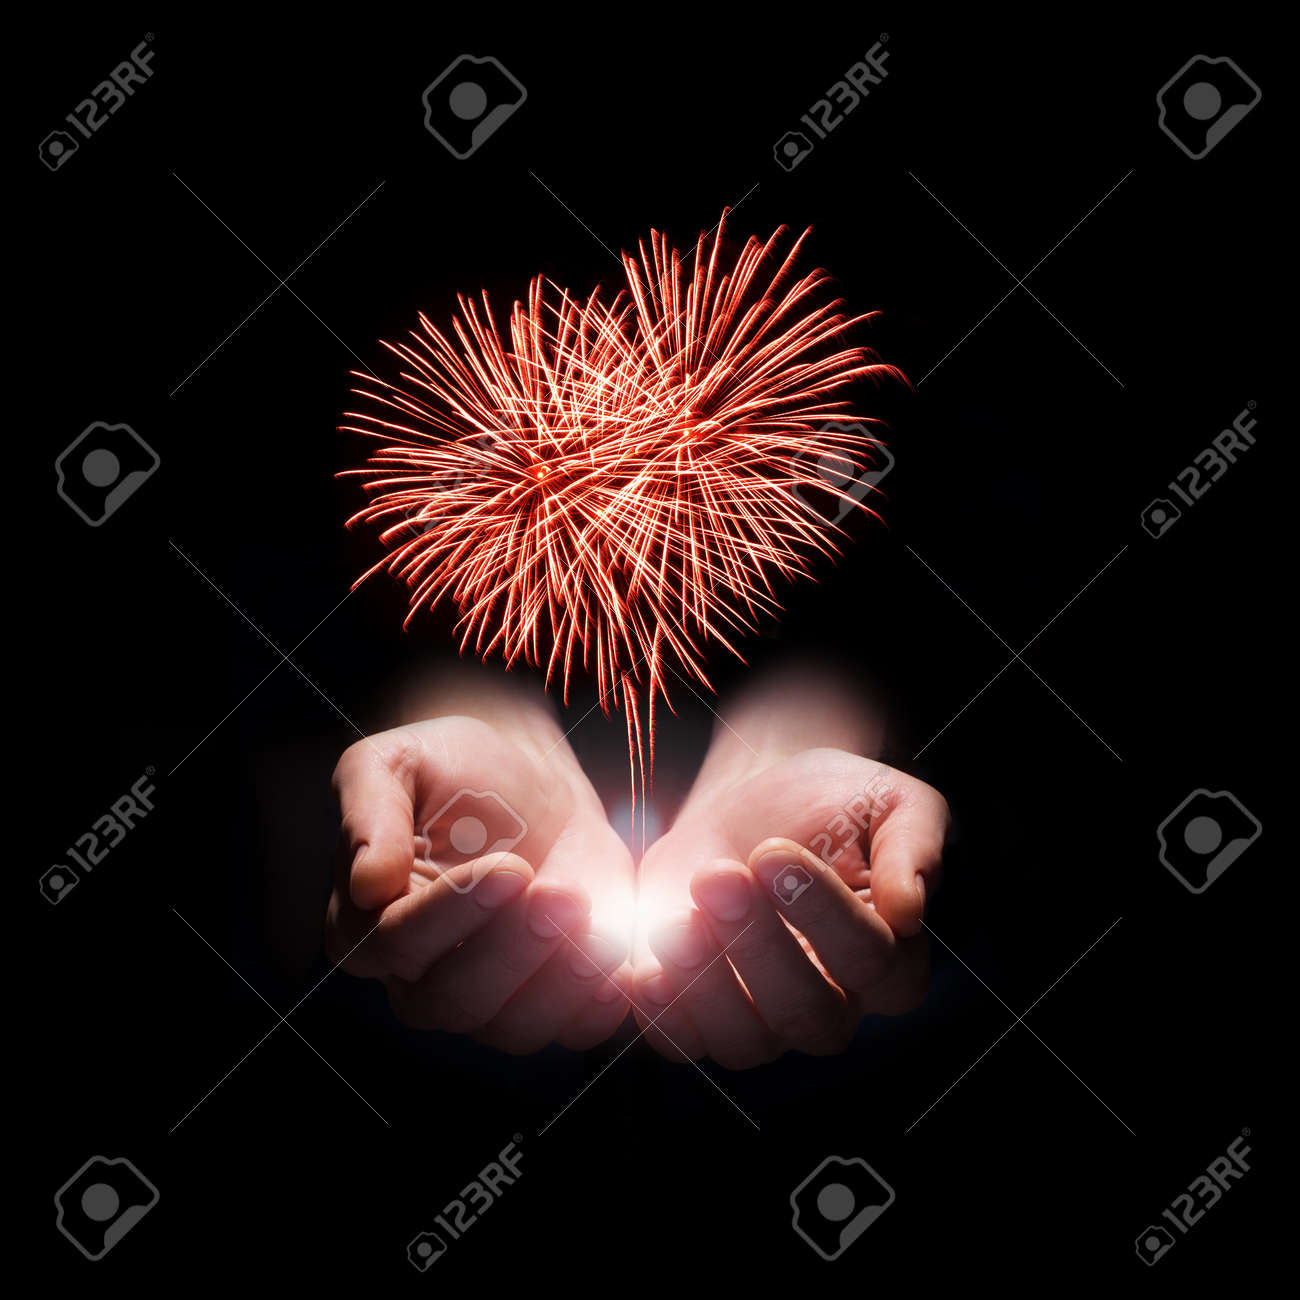 fireworks in the men's hands in the shape of a red heart on black background Stock Photo - 17845031